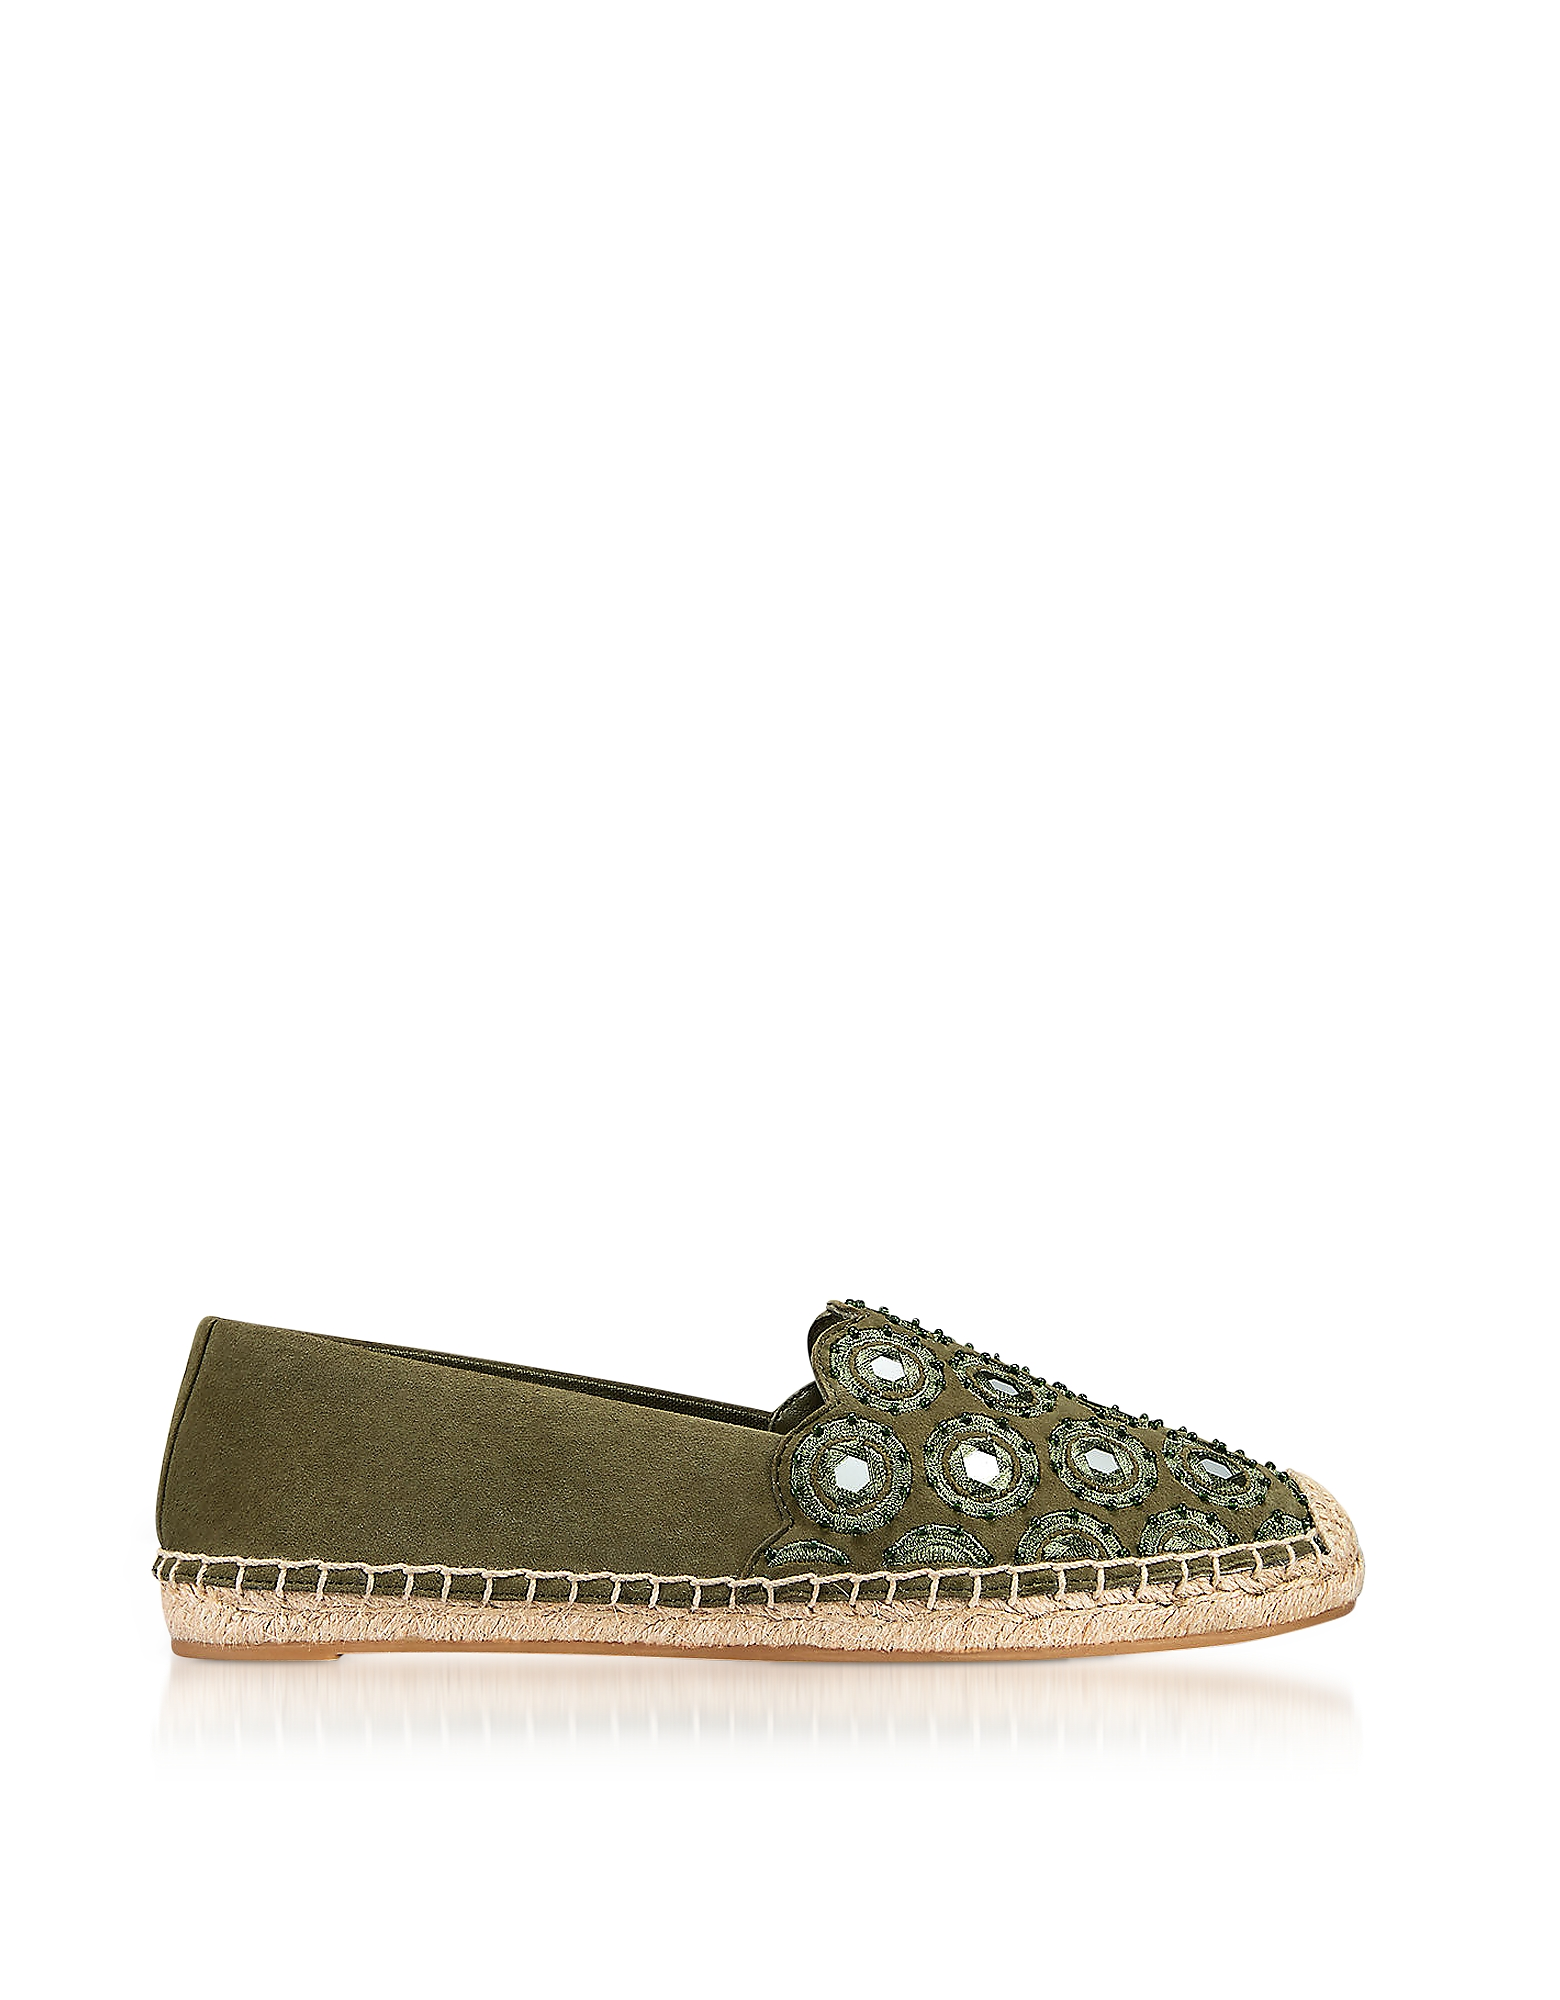 Tory Burch Shoes, Yasmin Olive Green Suede Embellished Flat Espadrilles